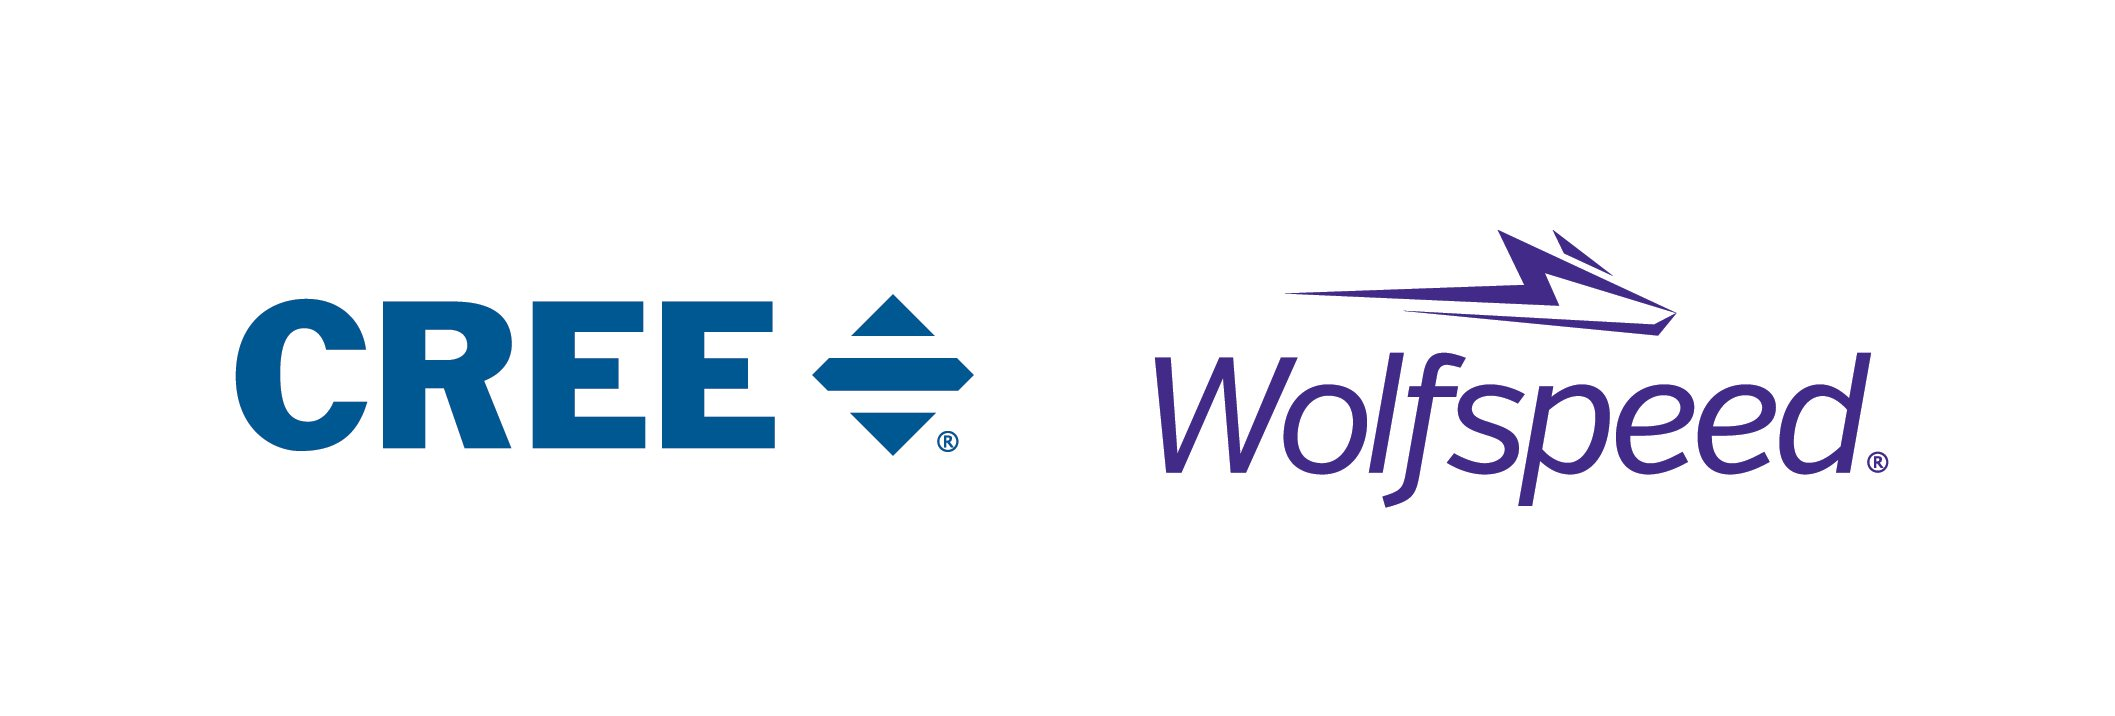 cree_wolfspeed_double_logos